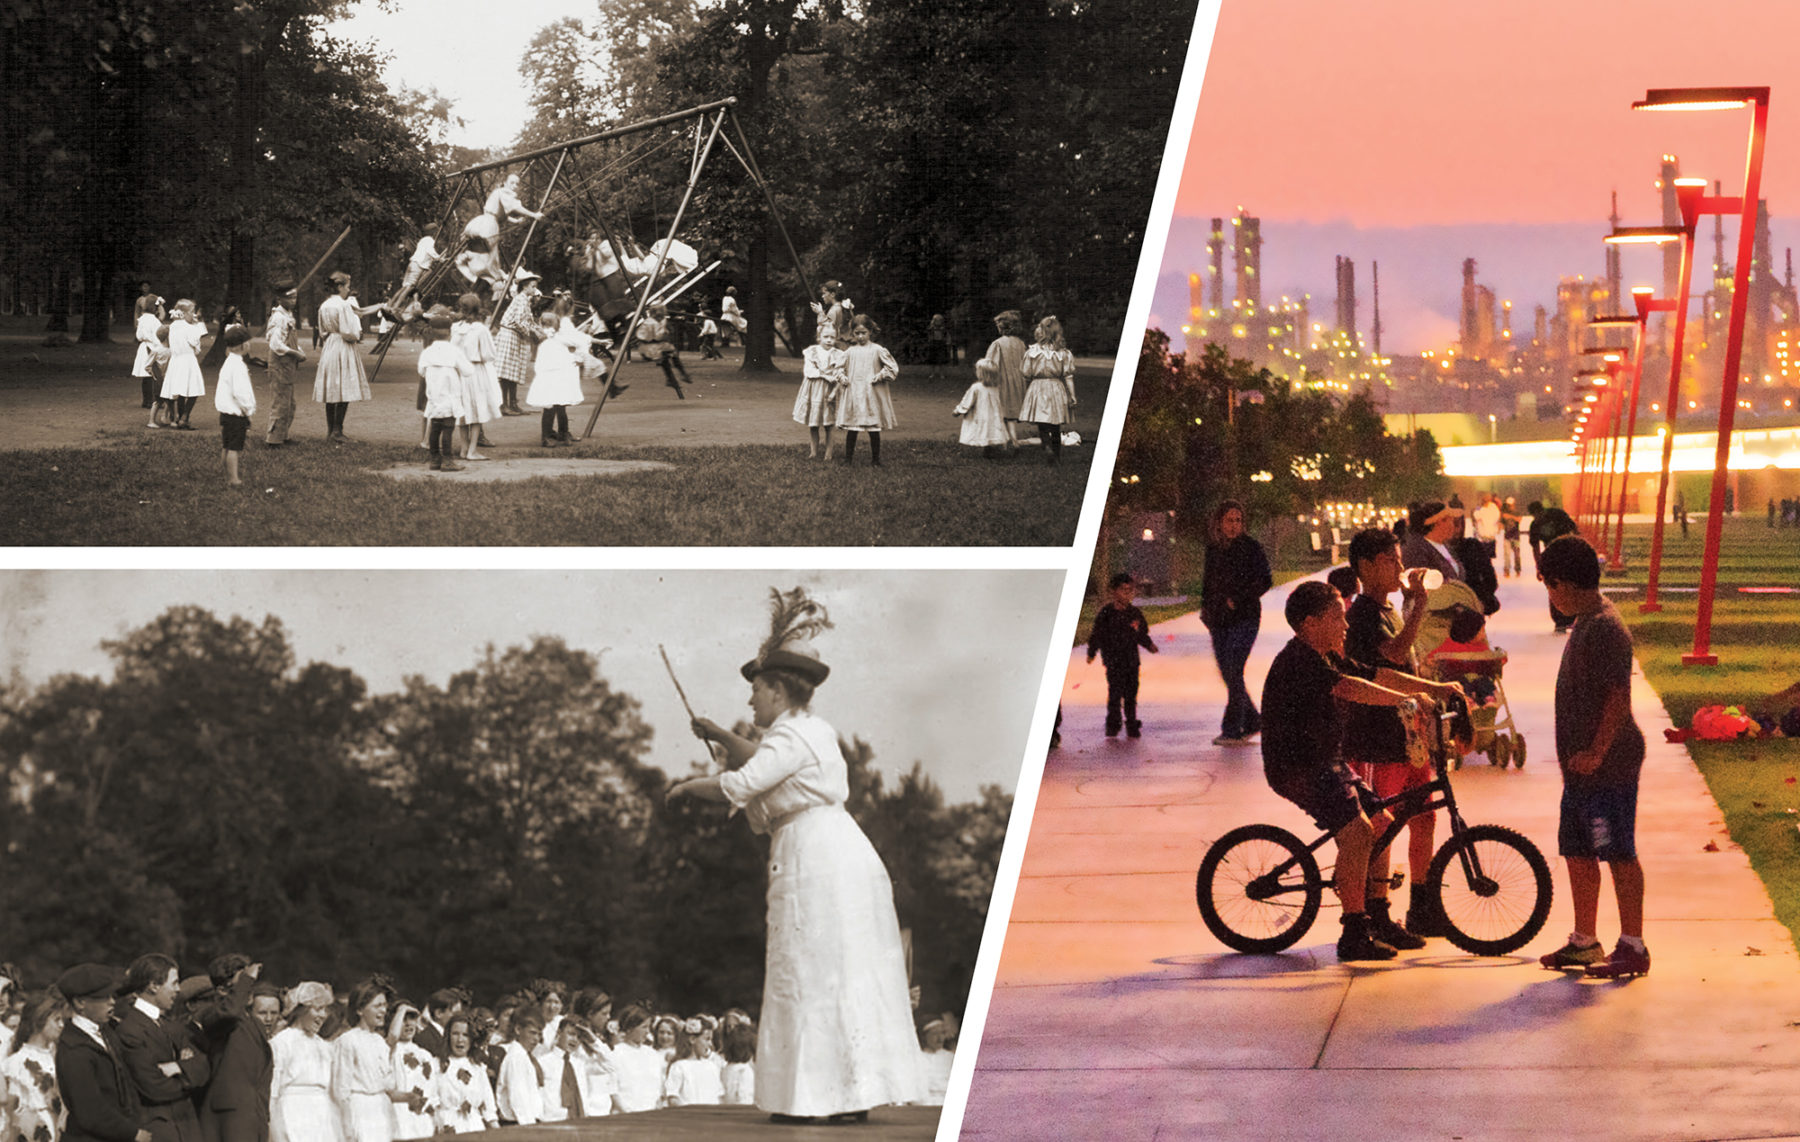 Photo collage of parks in the Victorian era and contemporary parks